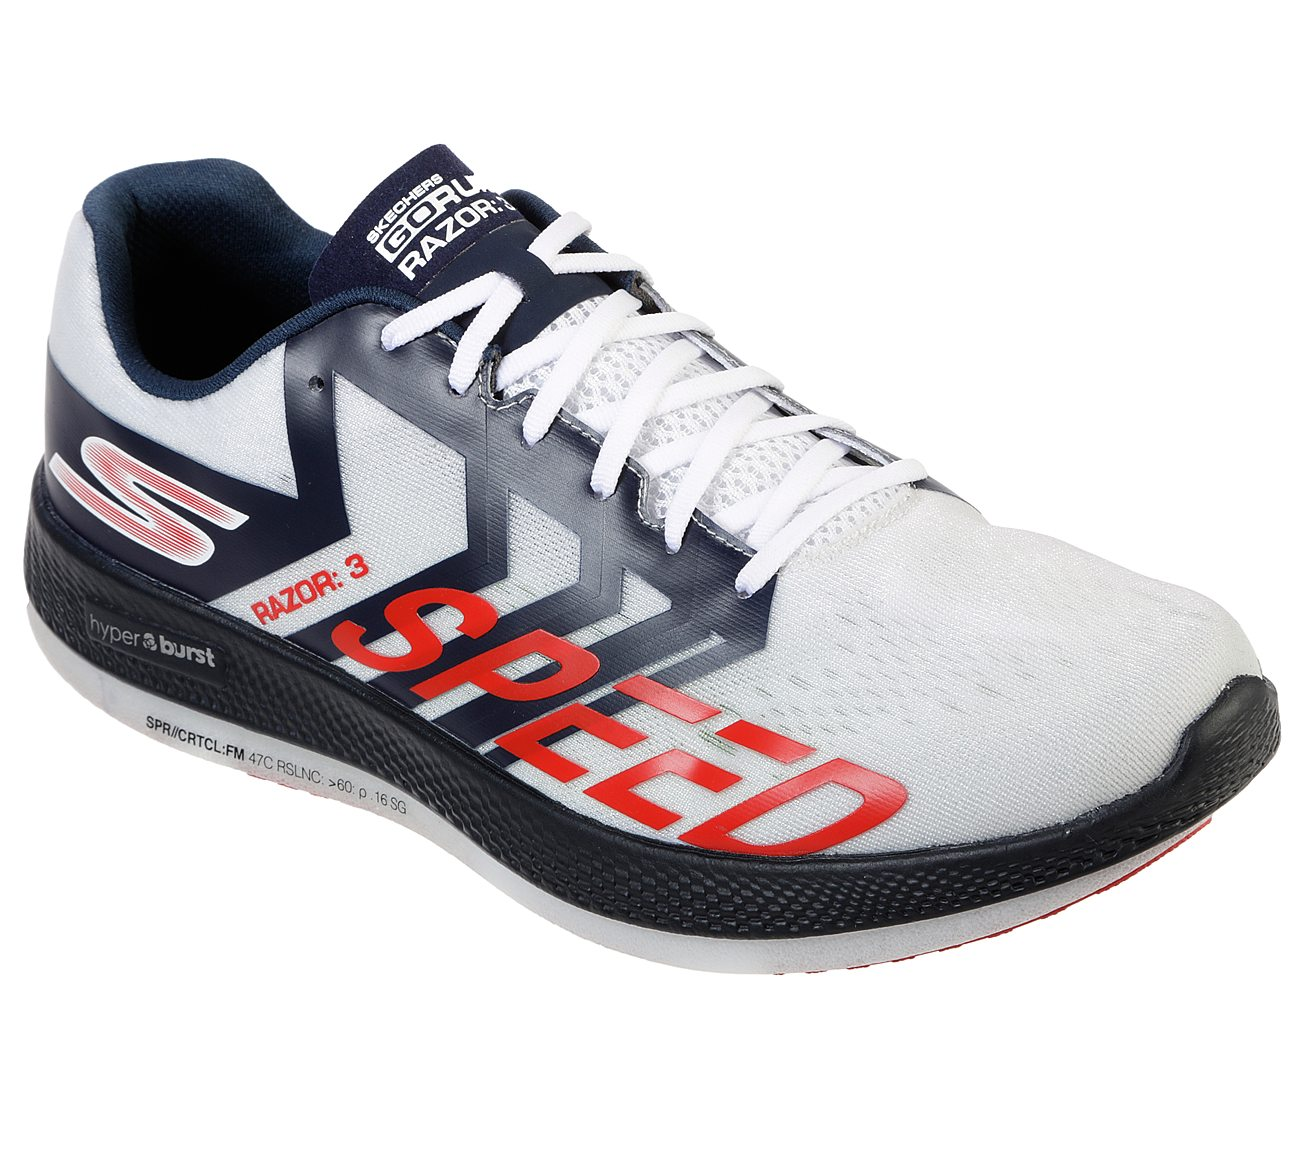 11cdb1f69dae Buy SKECHERS Skechers GOrun Razor 3 Hyper Skechers Performance Shoes ...